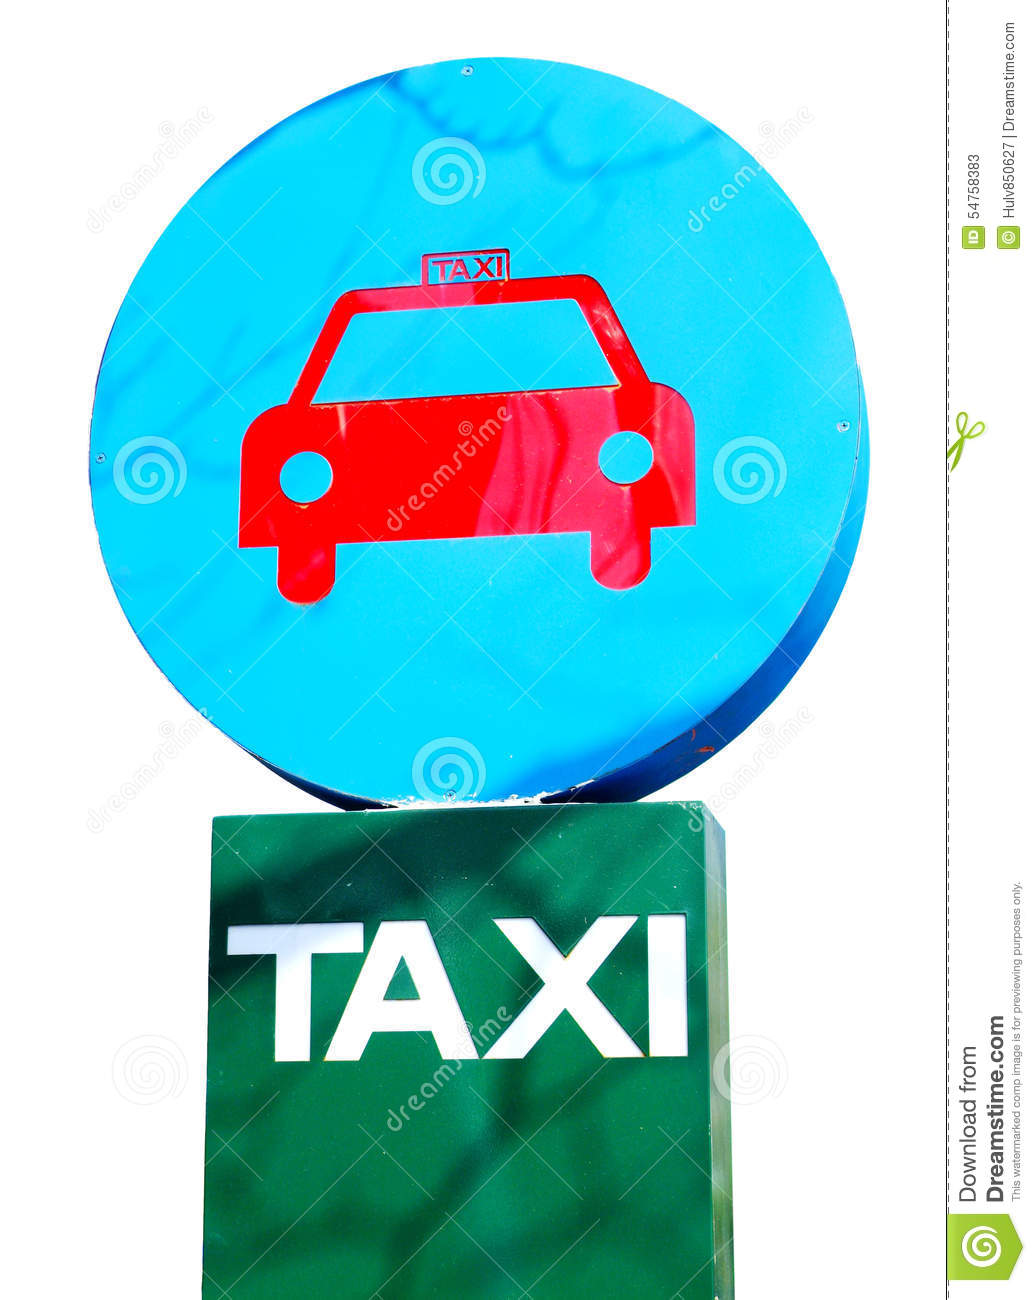 Blue And Green Taxi Parking Sign Stock Image - Image of front